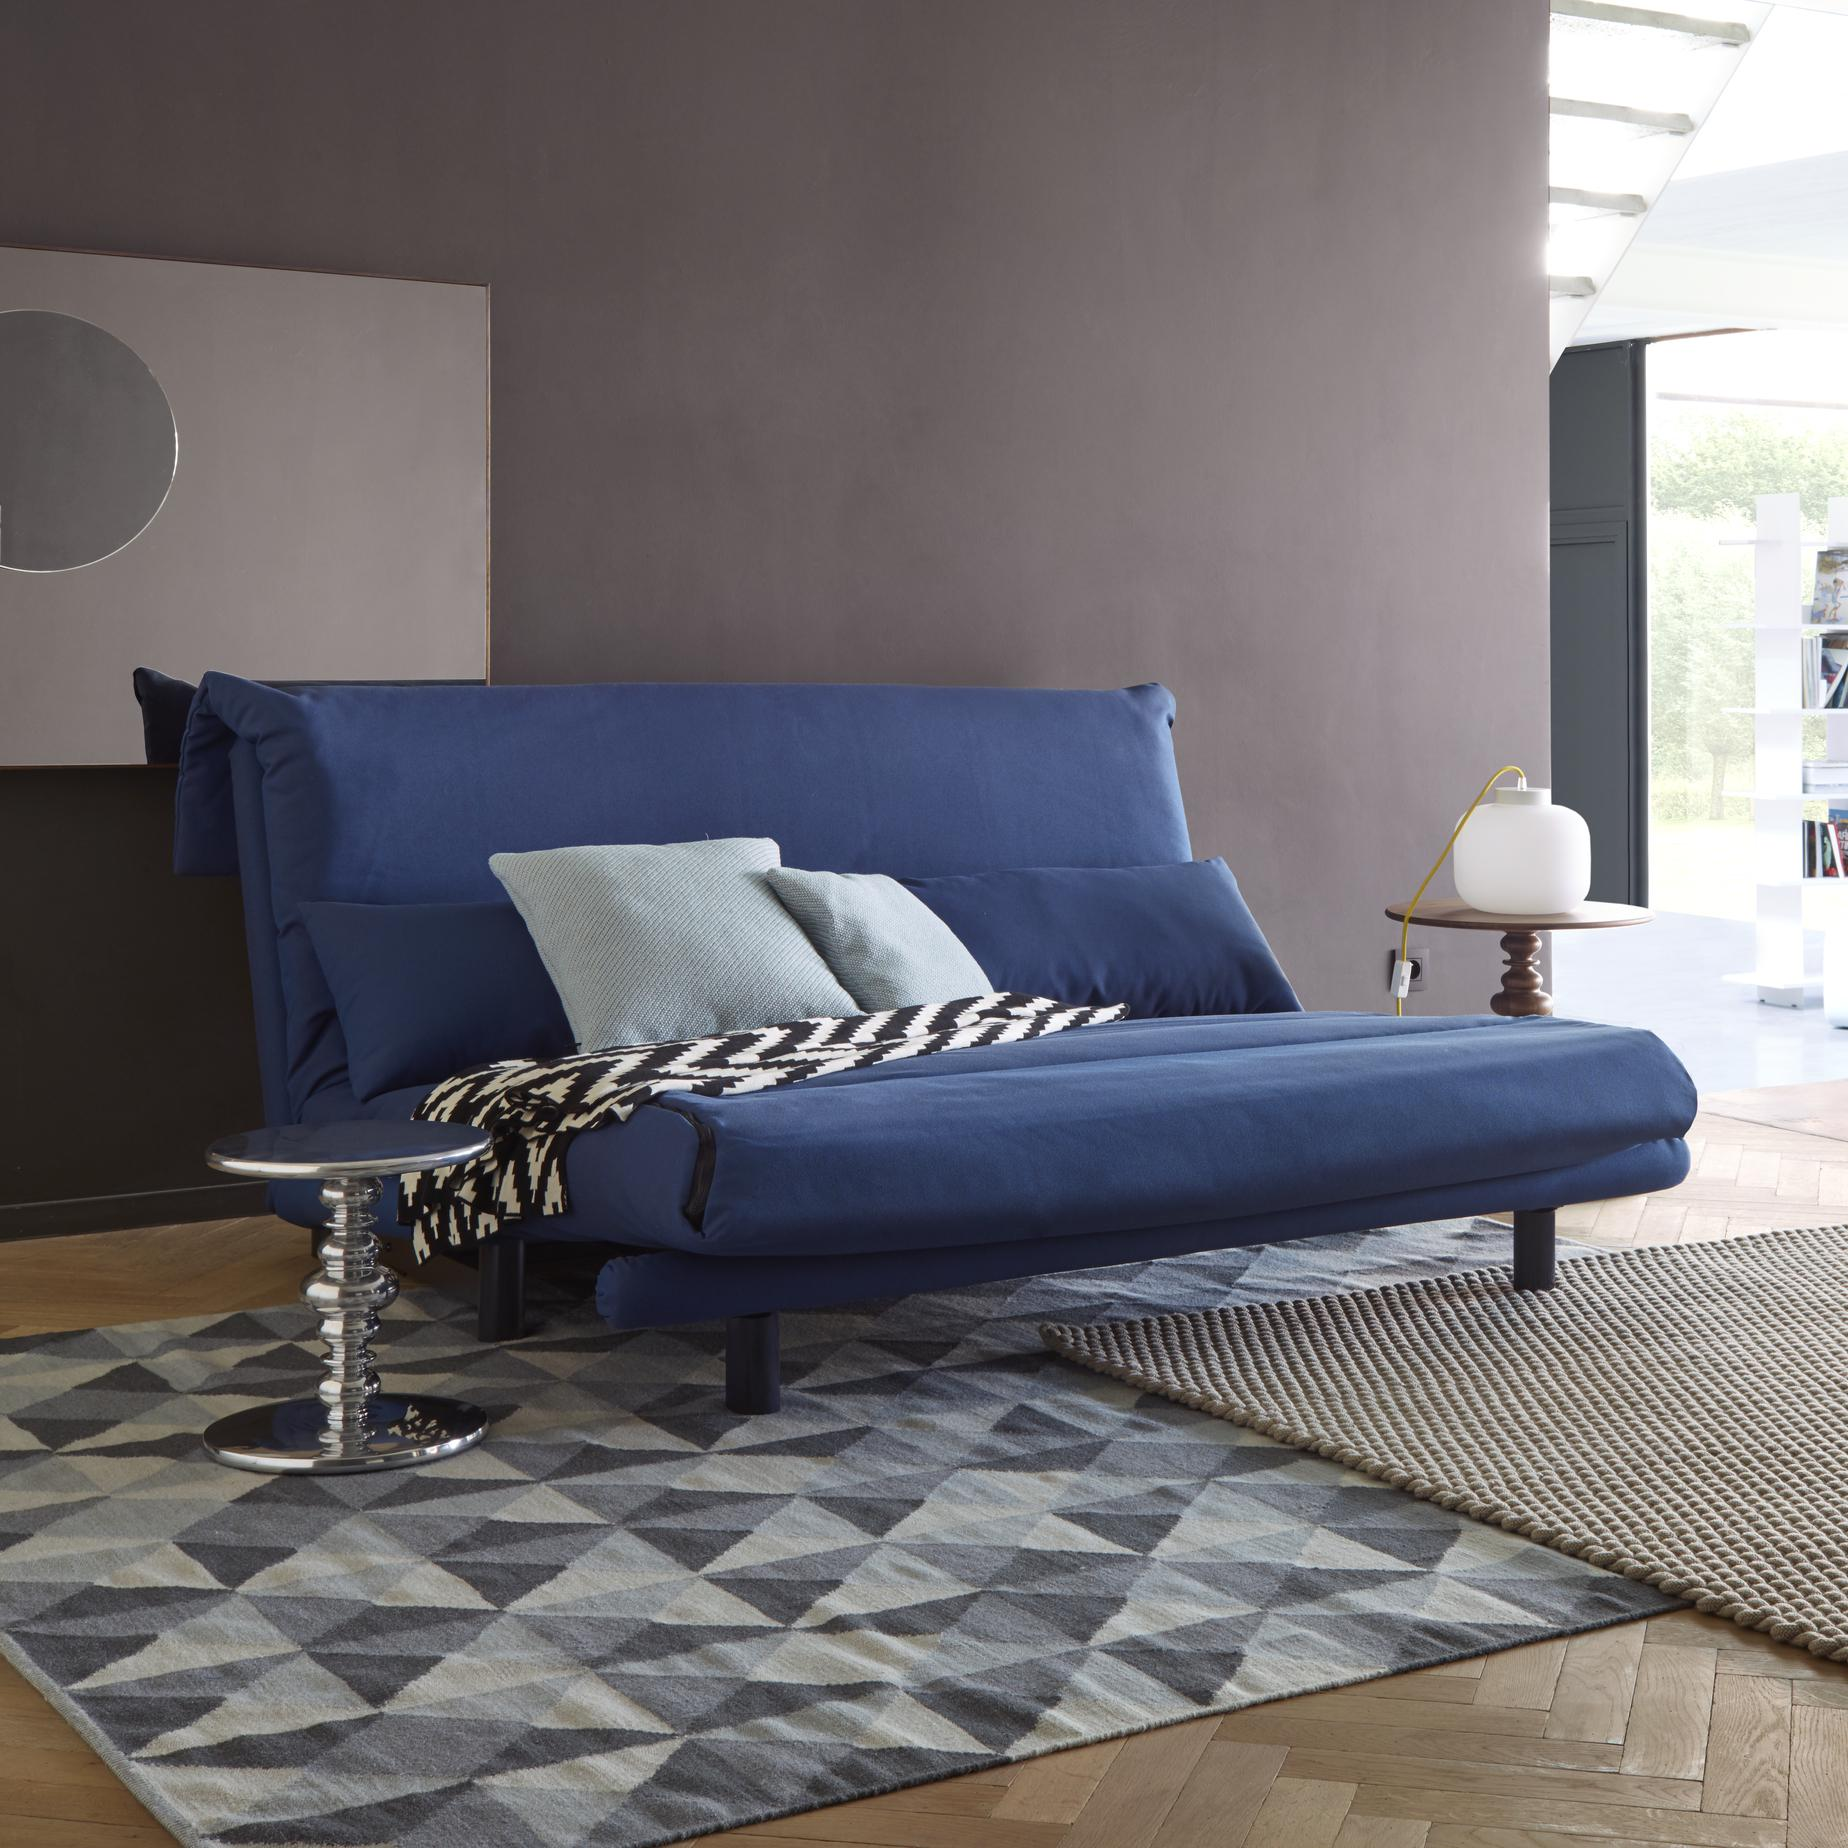 multy sofa beds from designer claude brisson ligne roset official site. Black Bedroom Furniture Sets. Home Design Ideas